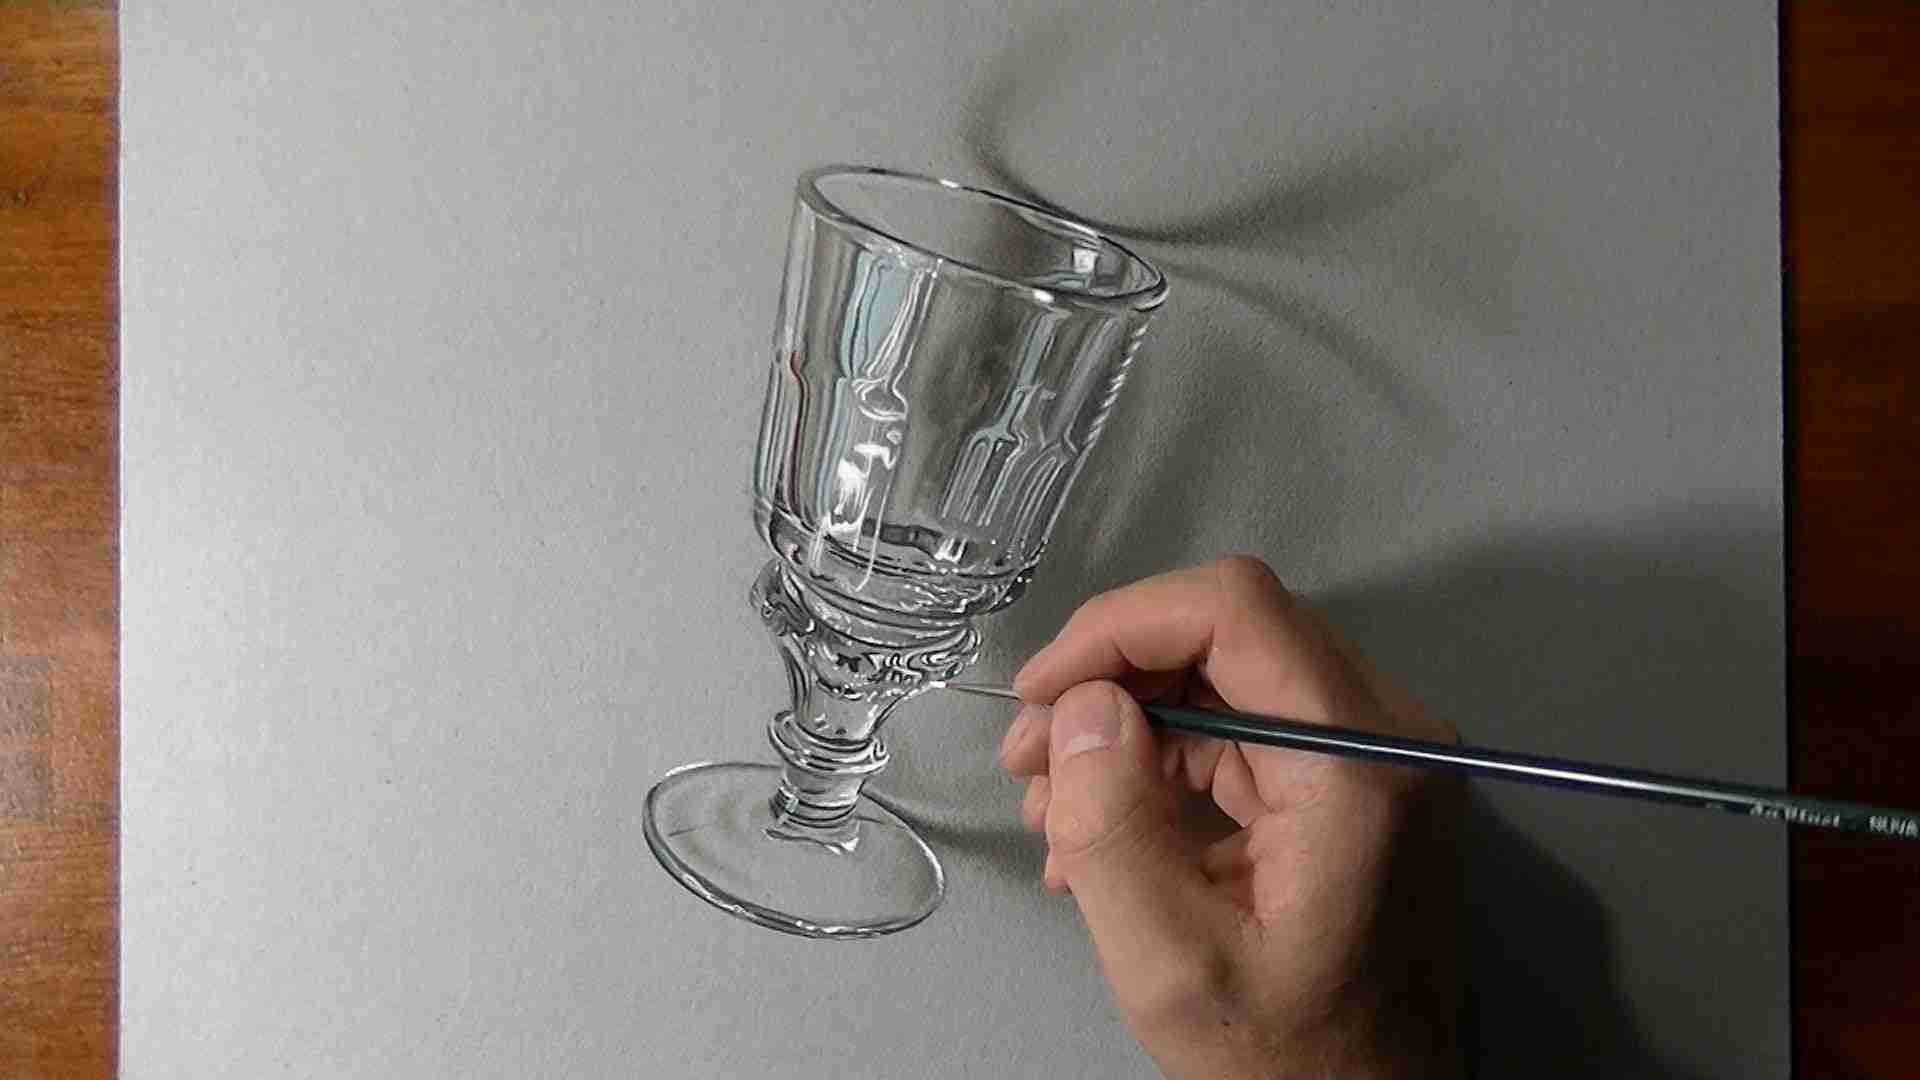 How I drew an Absinthe glass - YouTube